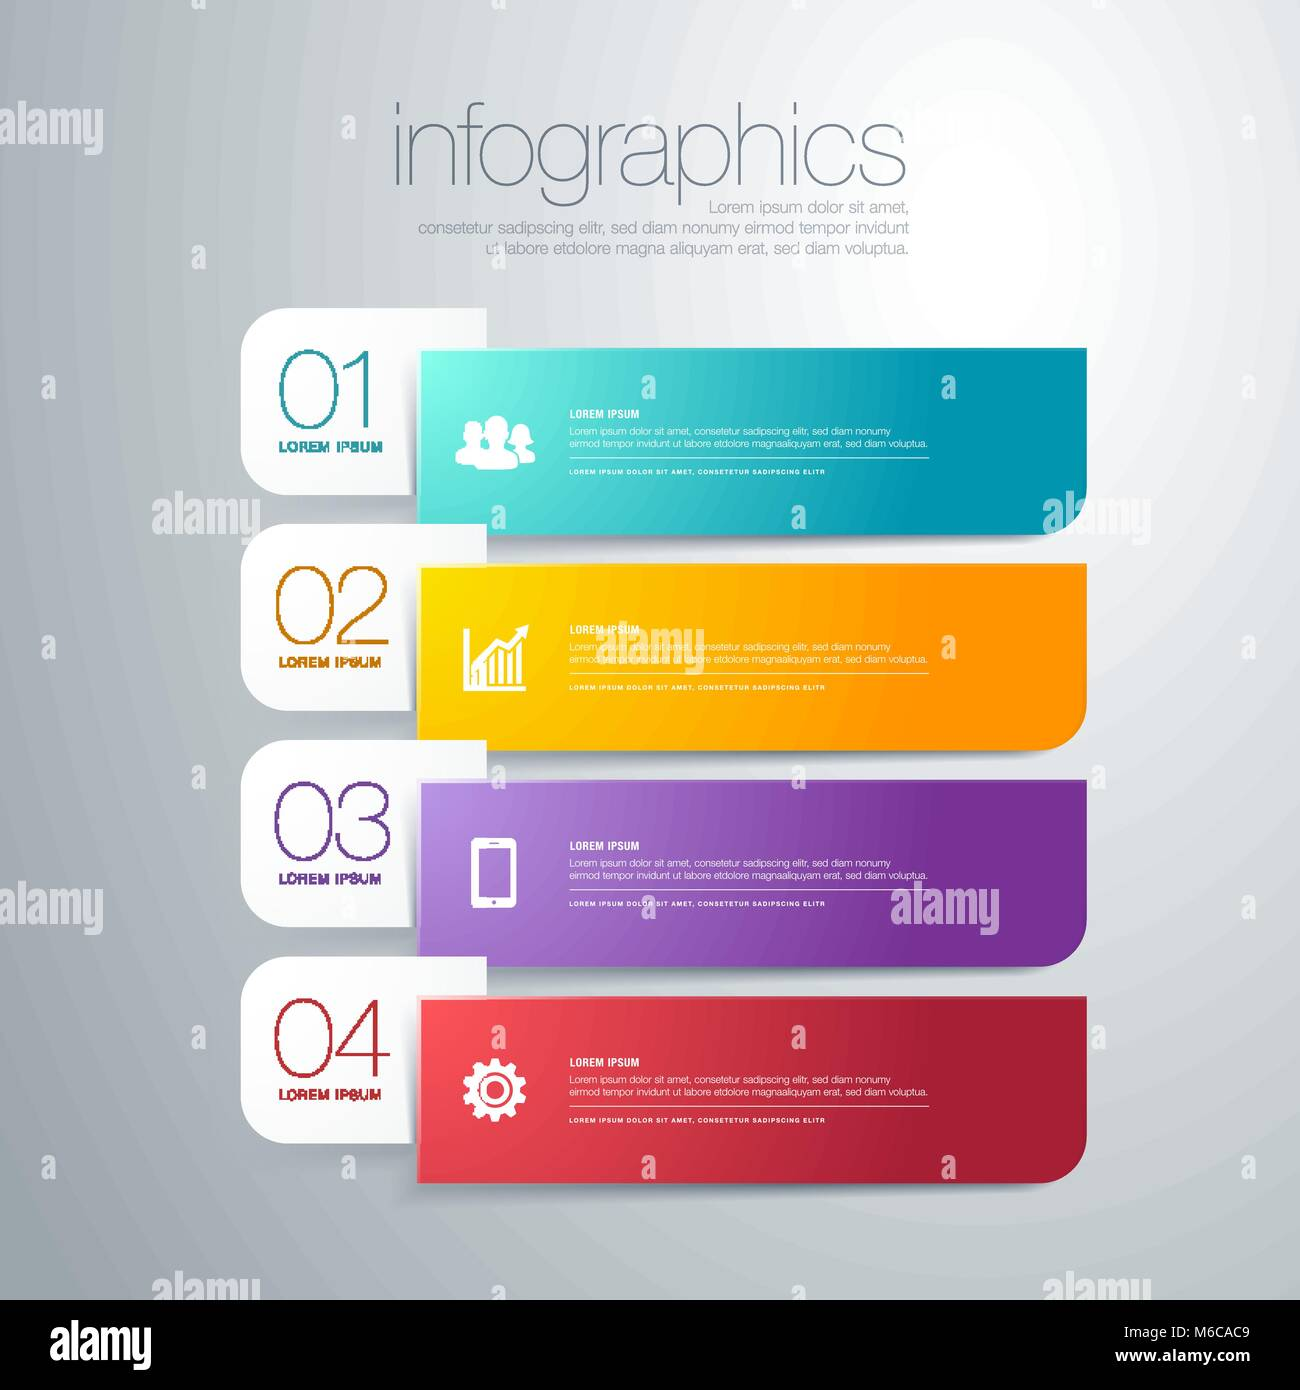 vector illustration modern infographic diagram with bars in different color, text and icons. perfect for presentation, - Stock Image